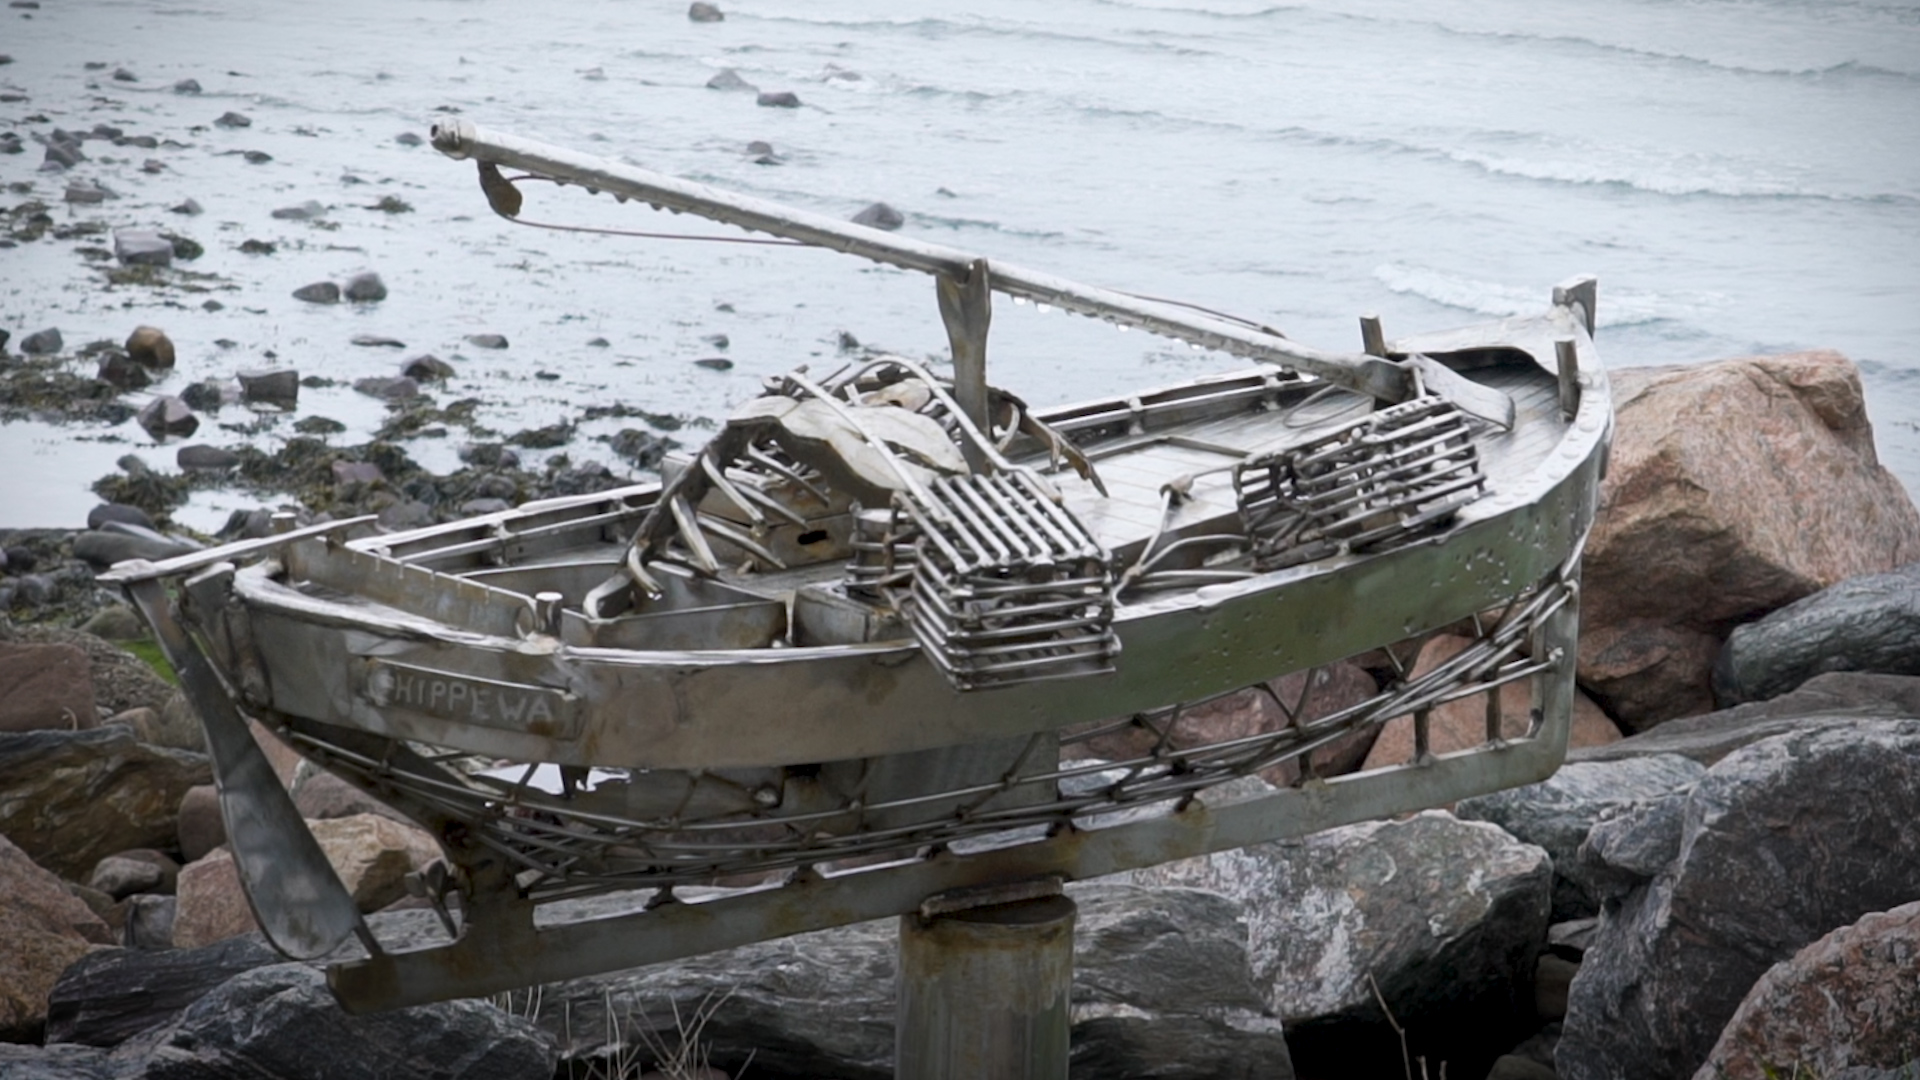 This latest piece – a creel fishing boat - 'mysteriously' appeared towards the end of 2018